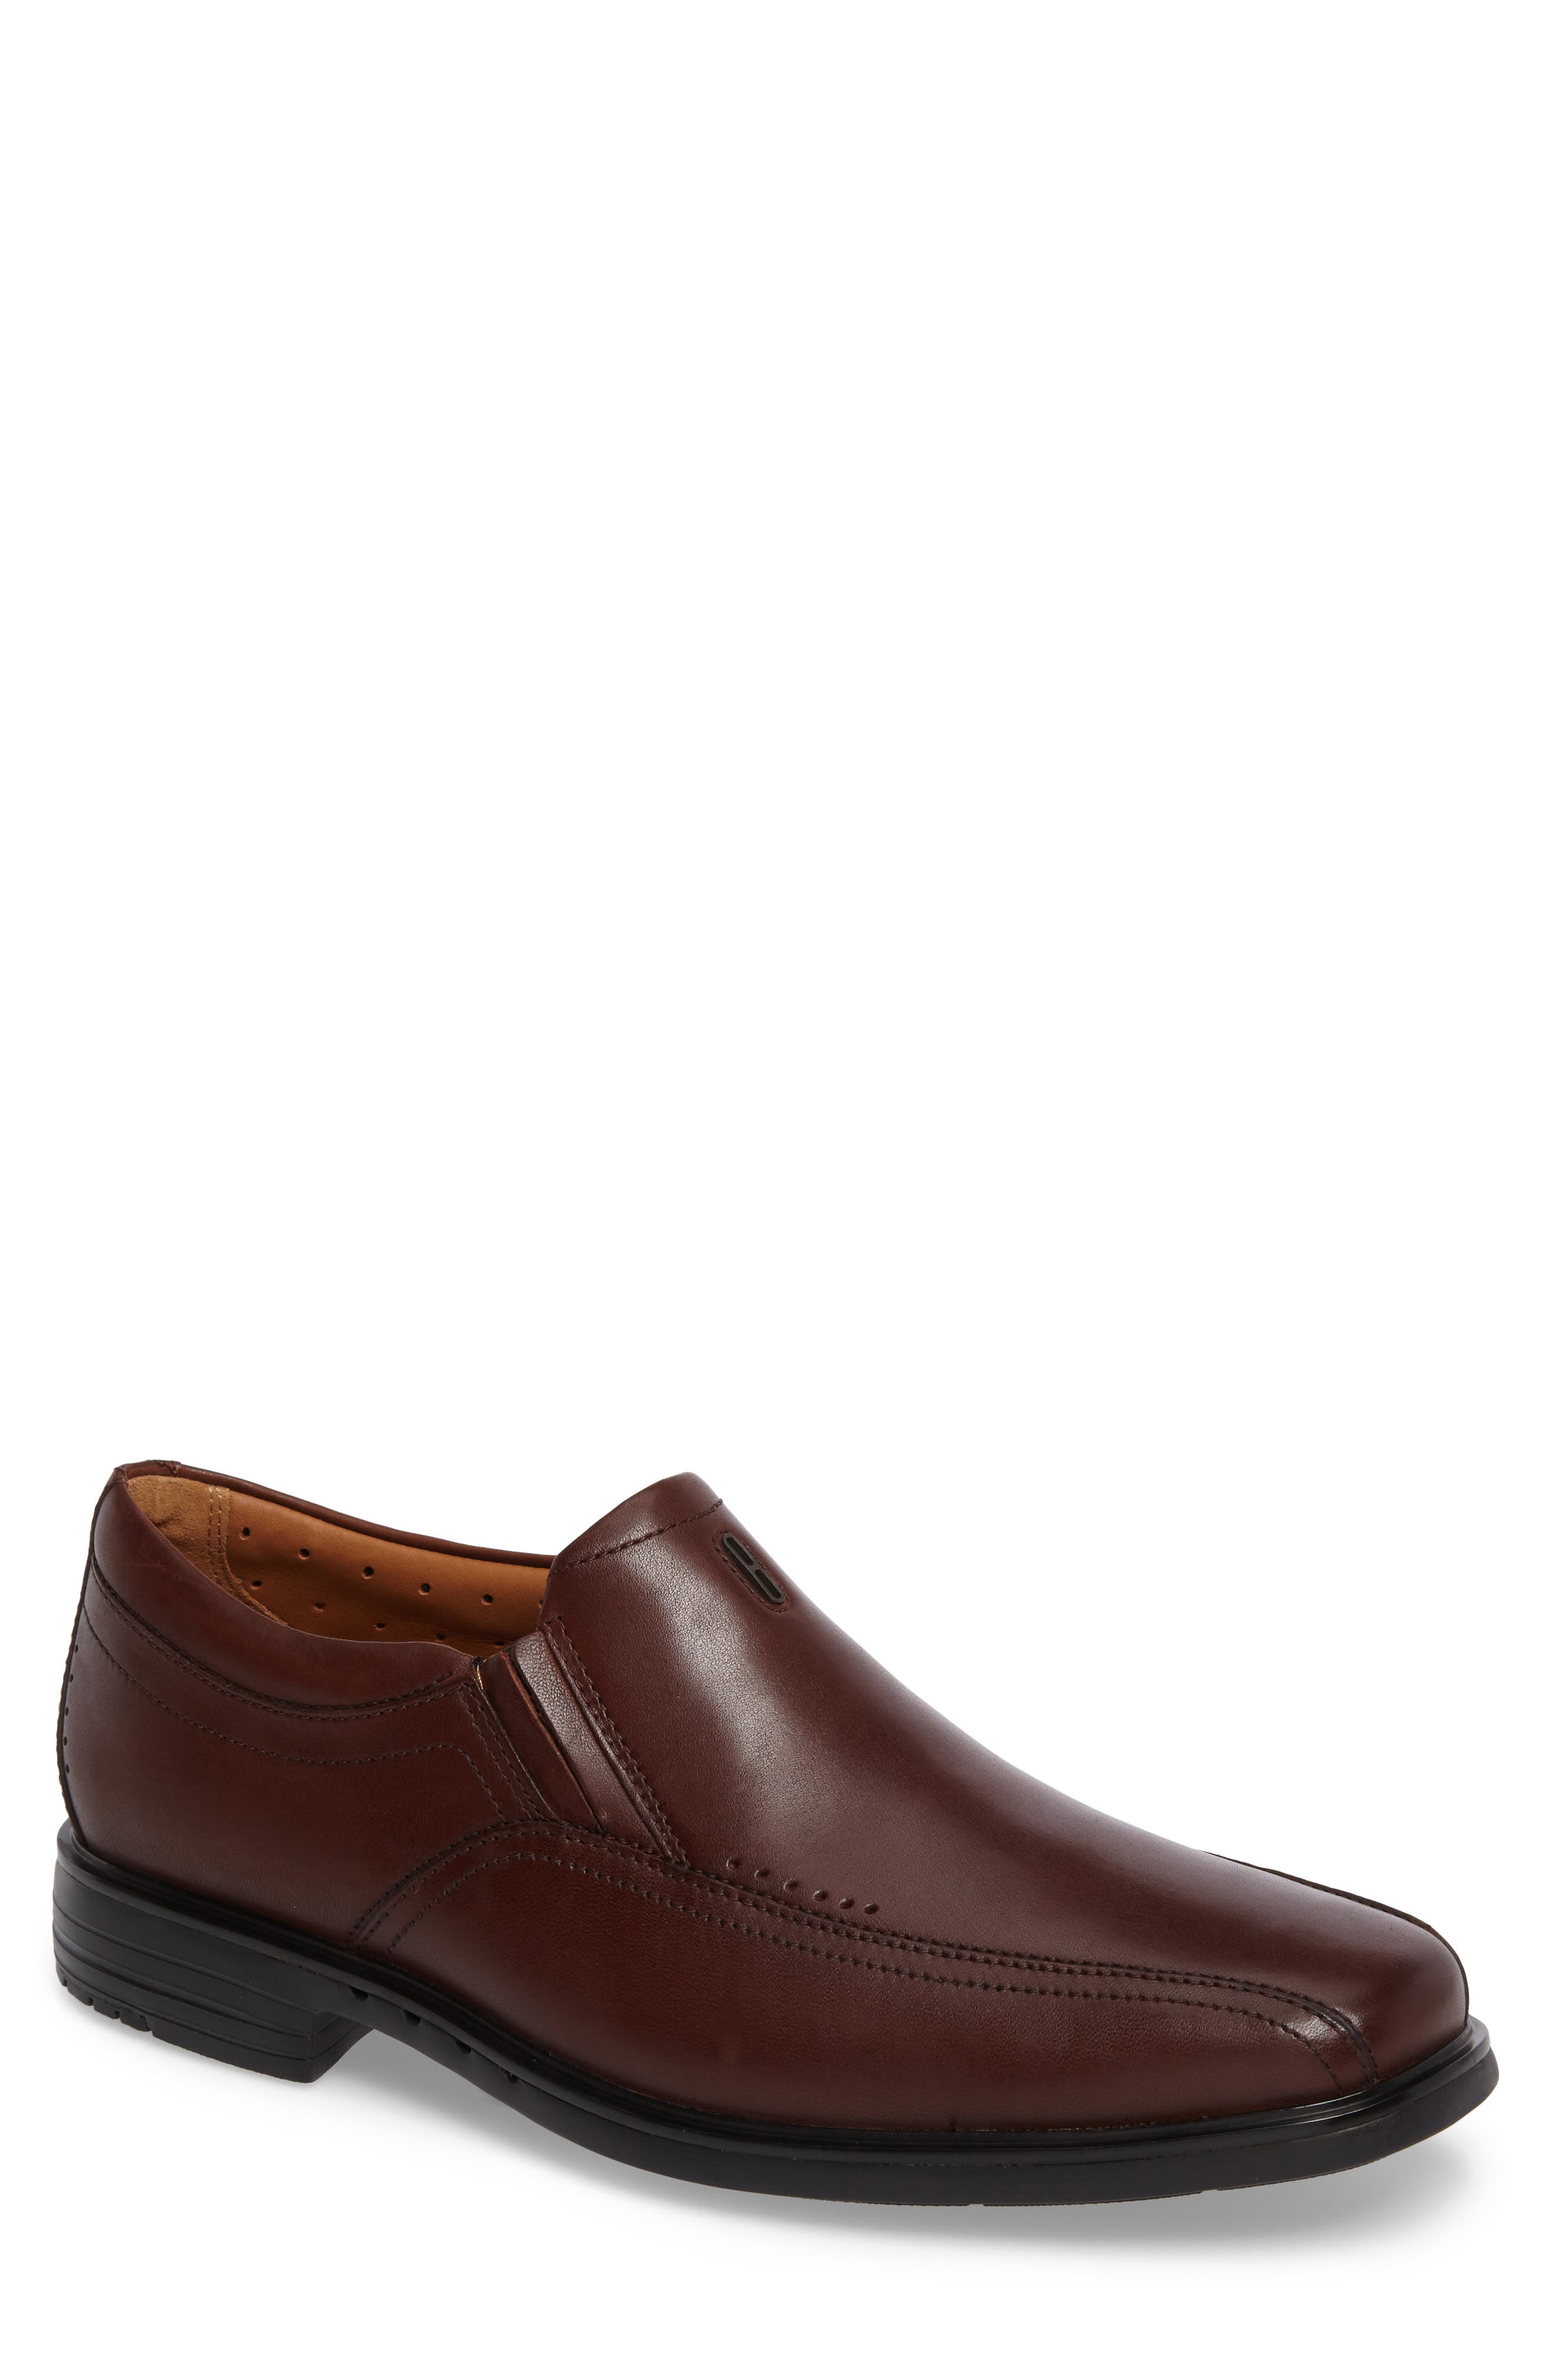 Un.Sheridan Go Loafer,                         Main,                         color, Brown Leather